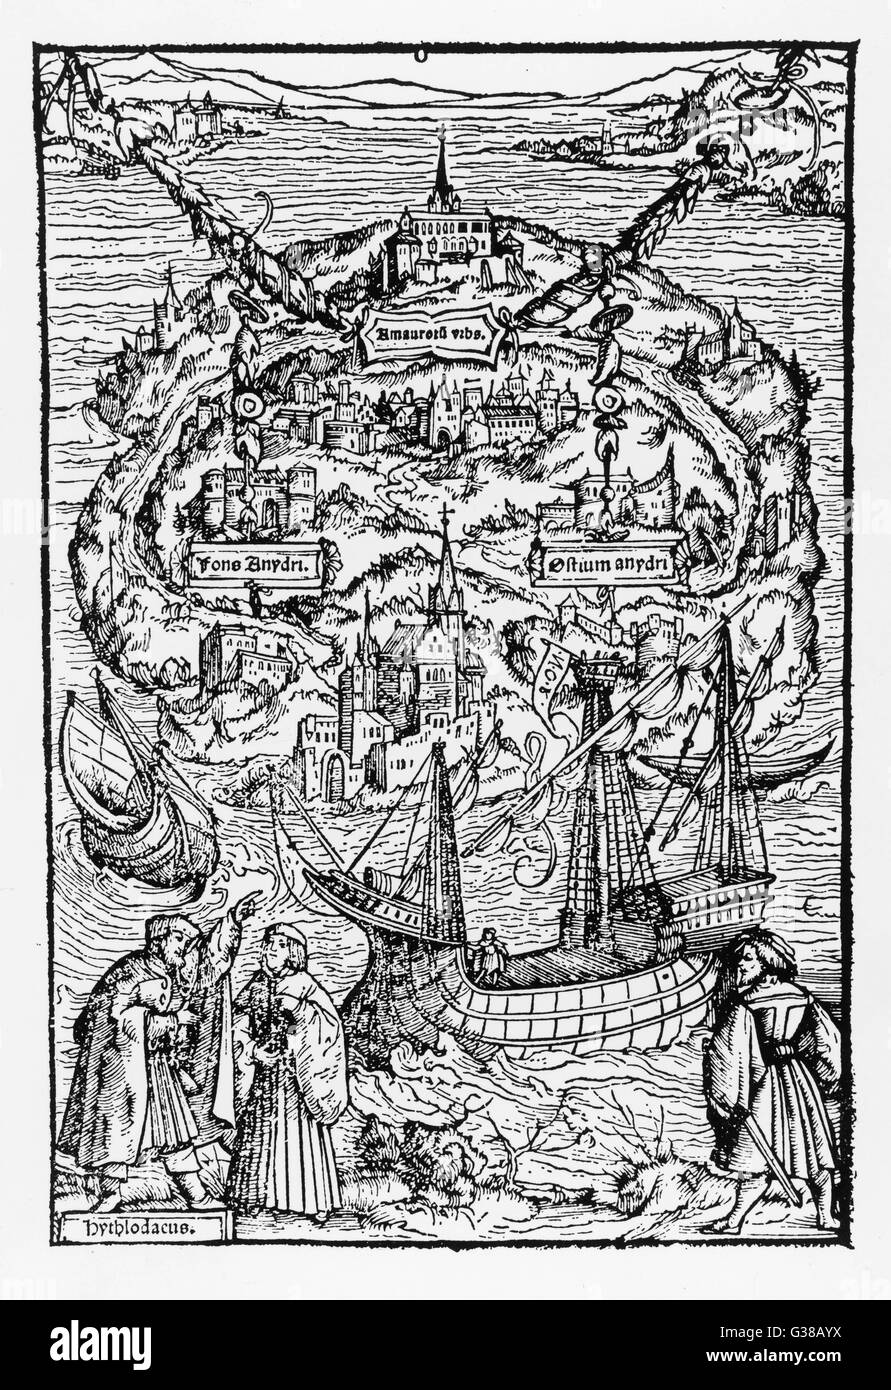 The imaginary island of  UTOPIA, as described by Sir  Thomas More       Date: 1518 - Stock Image